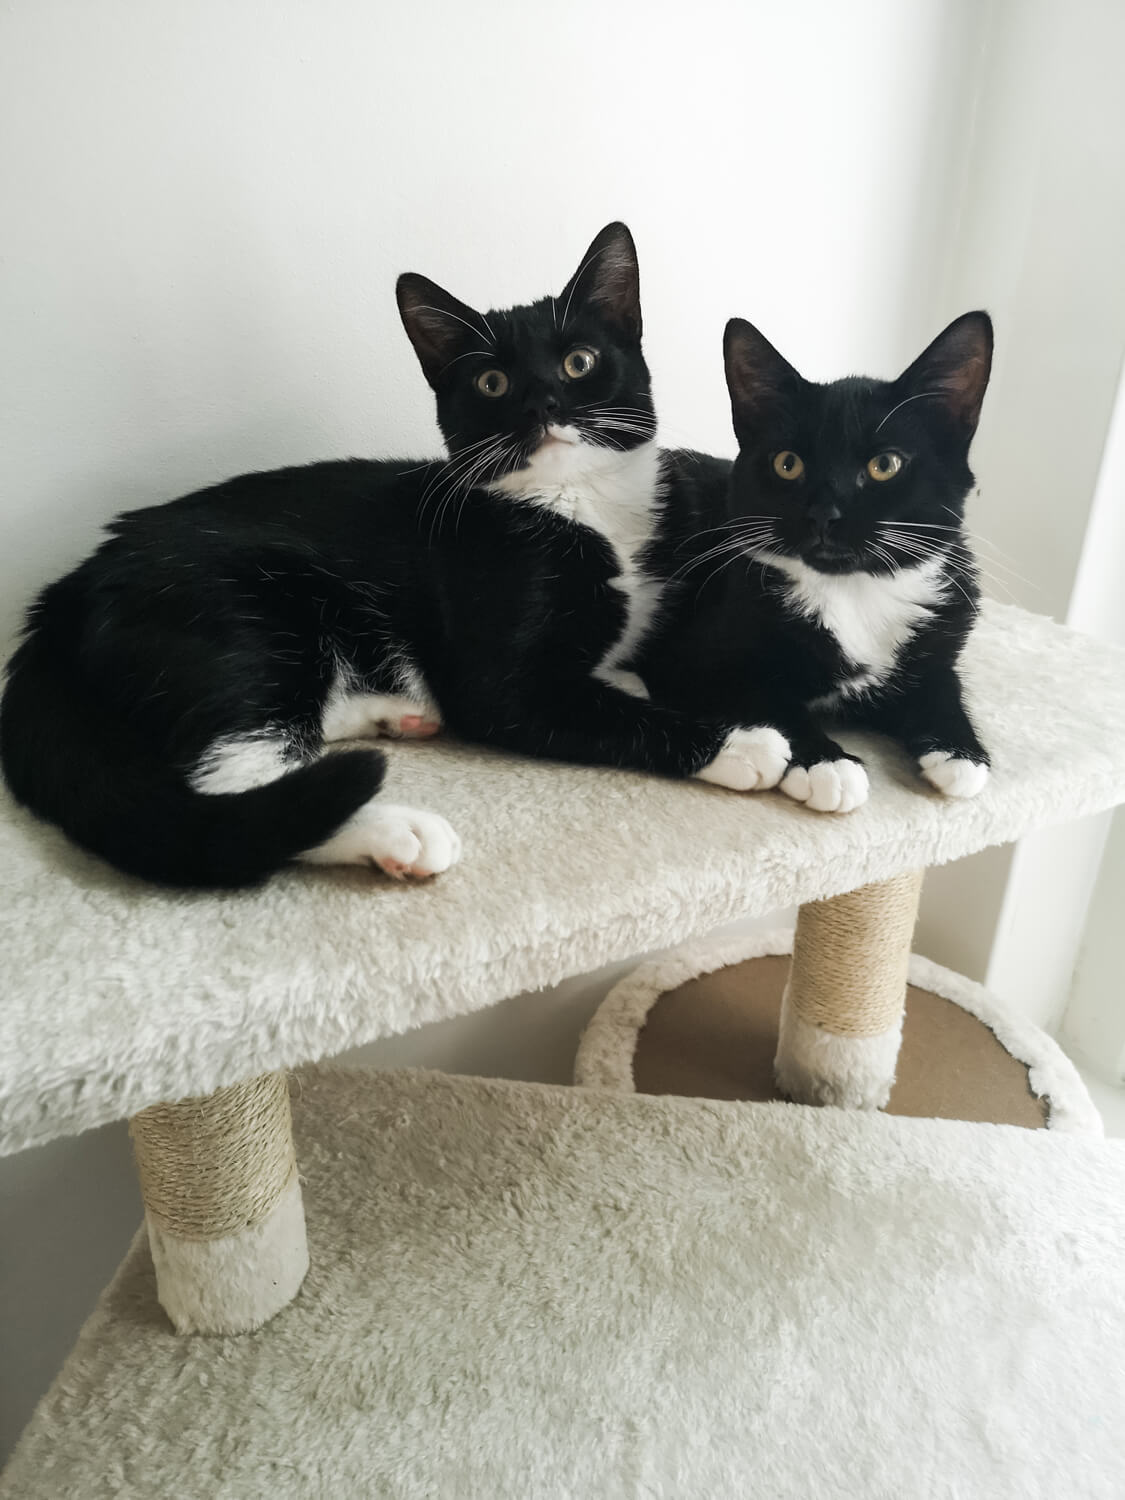 Two tuxedo cats laying next to each other on the top level of a cat tree.